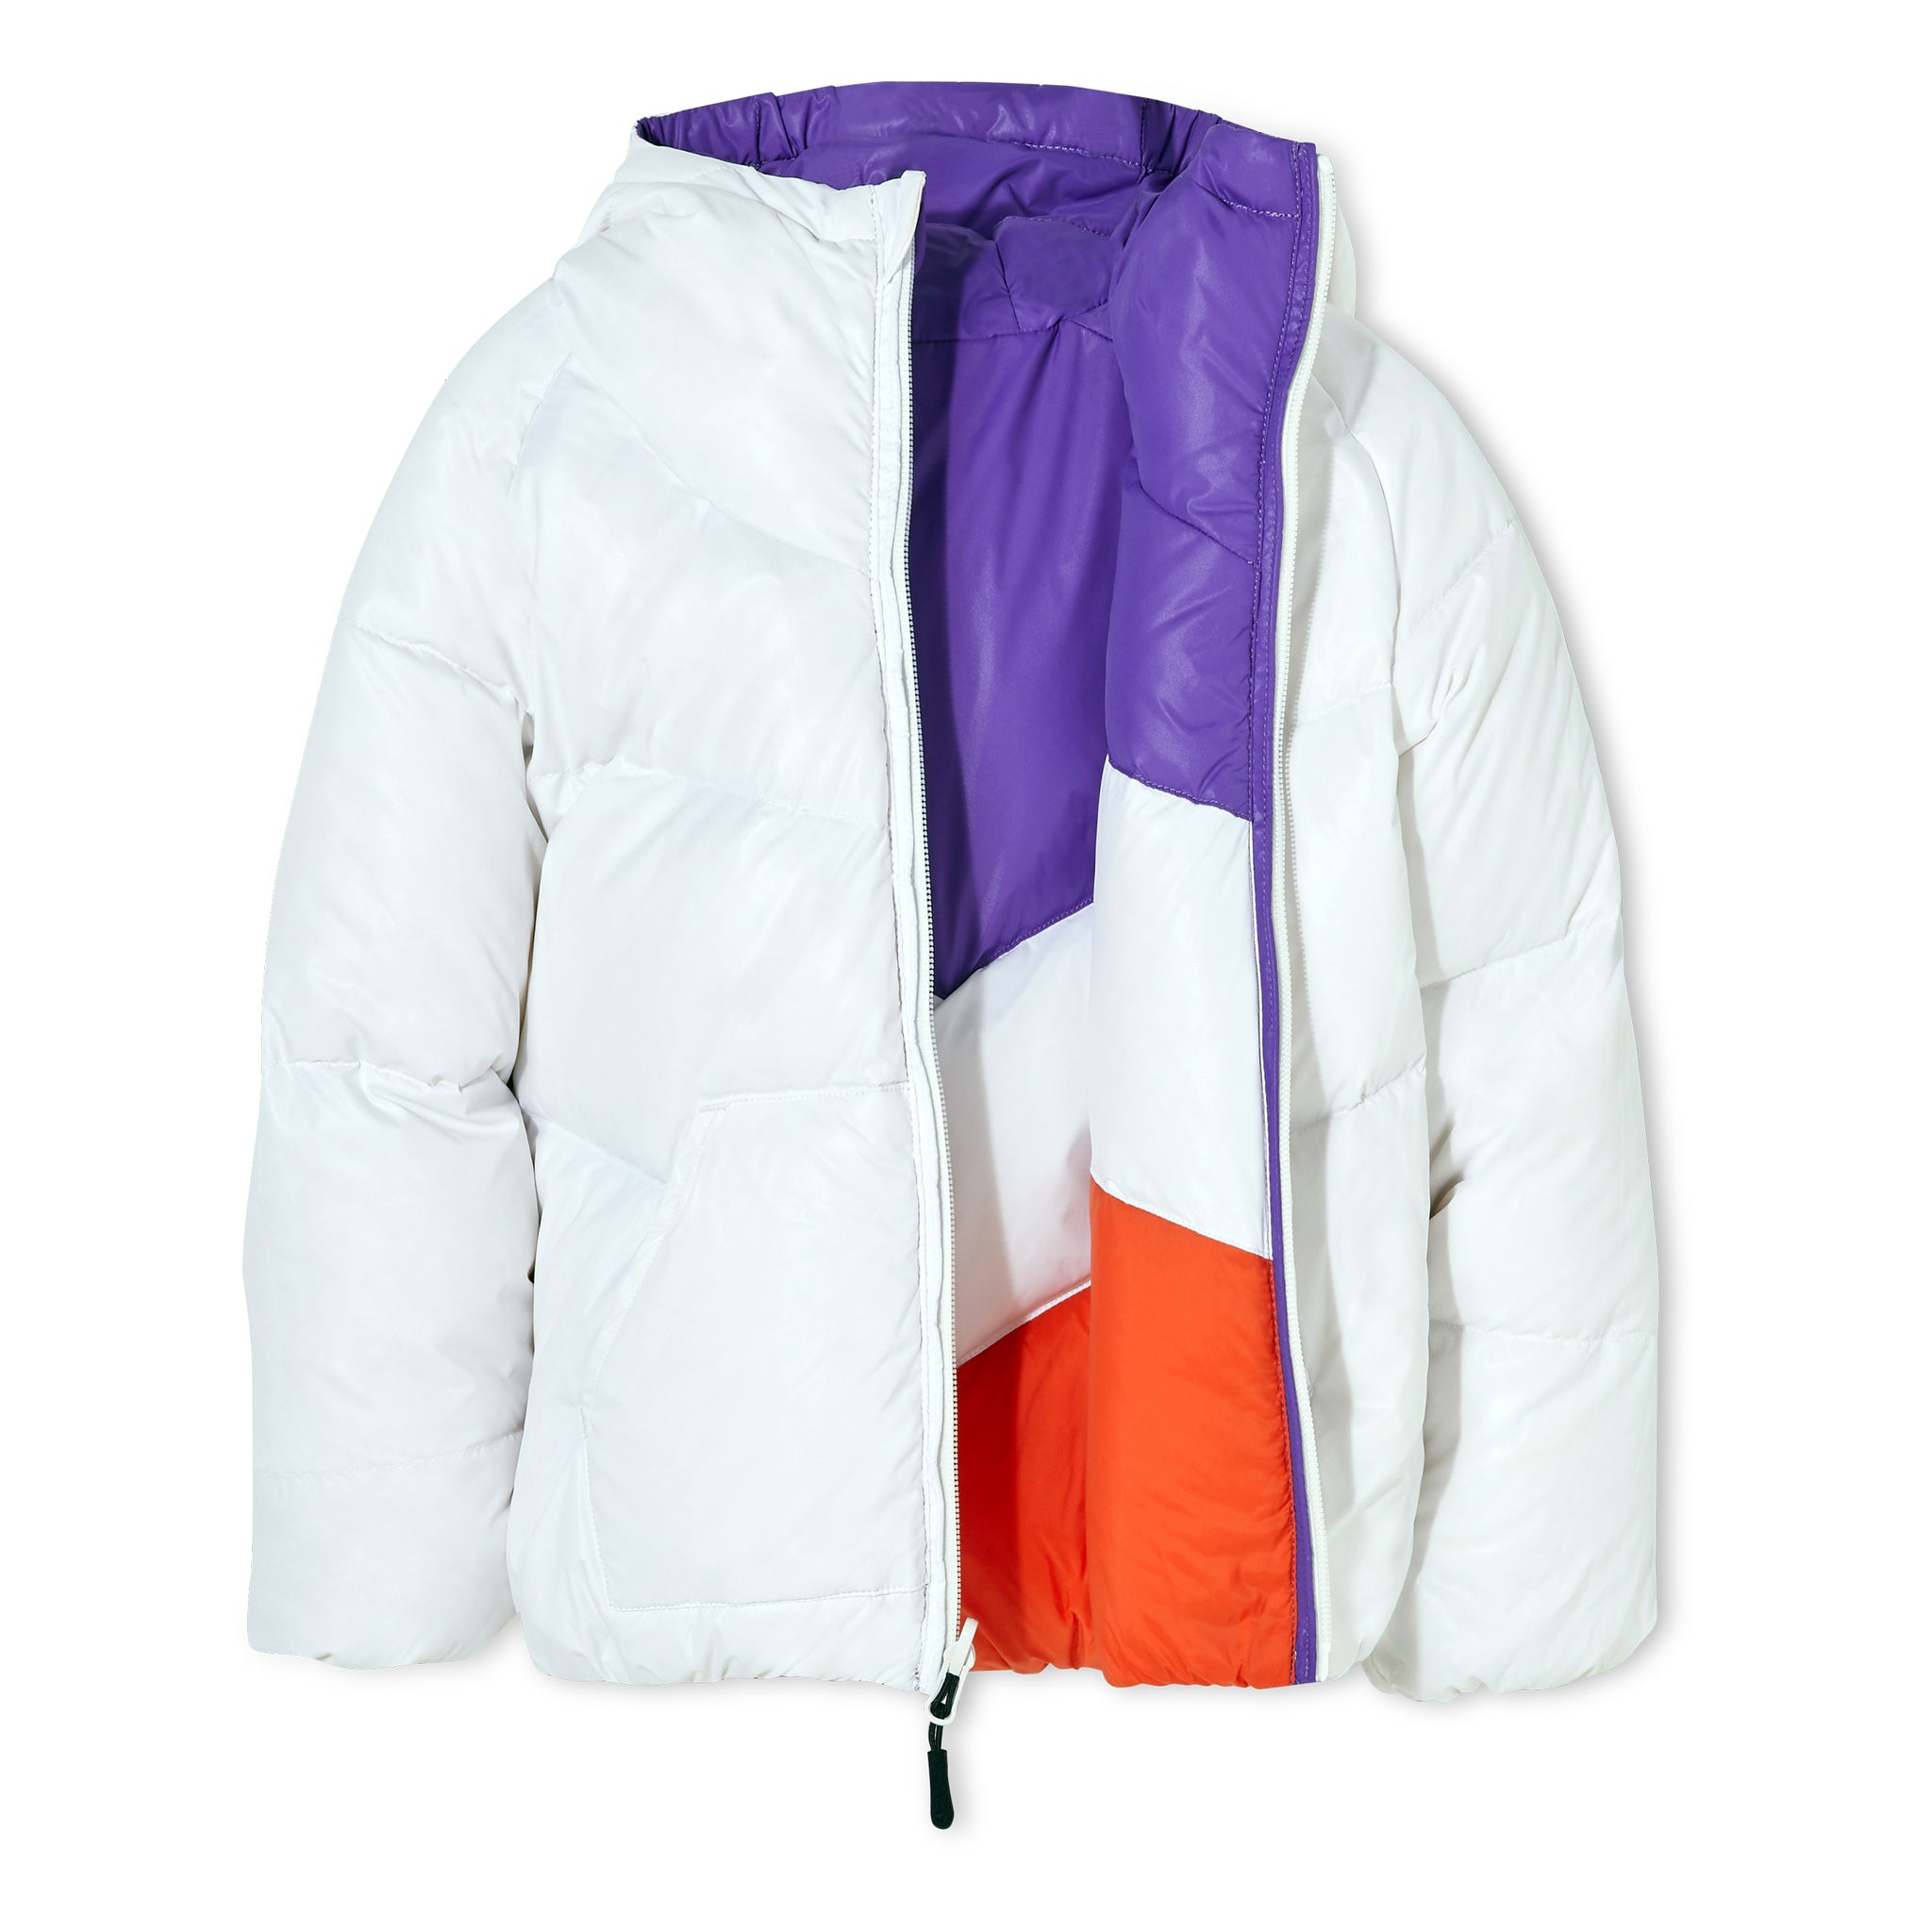 SNOWDANCE Off White - Reversible Down Jacket 5